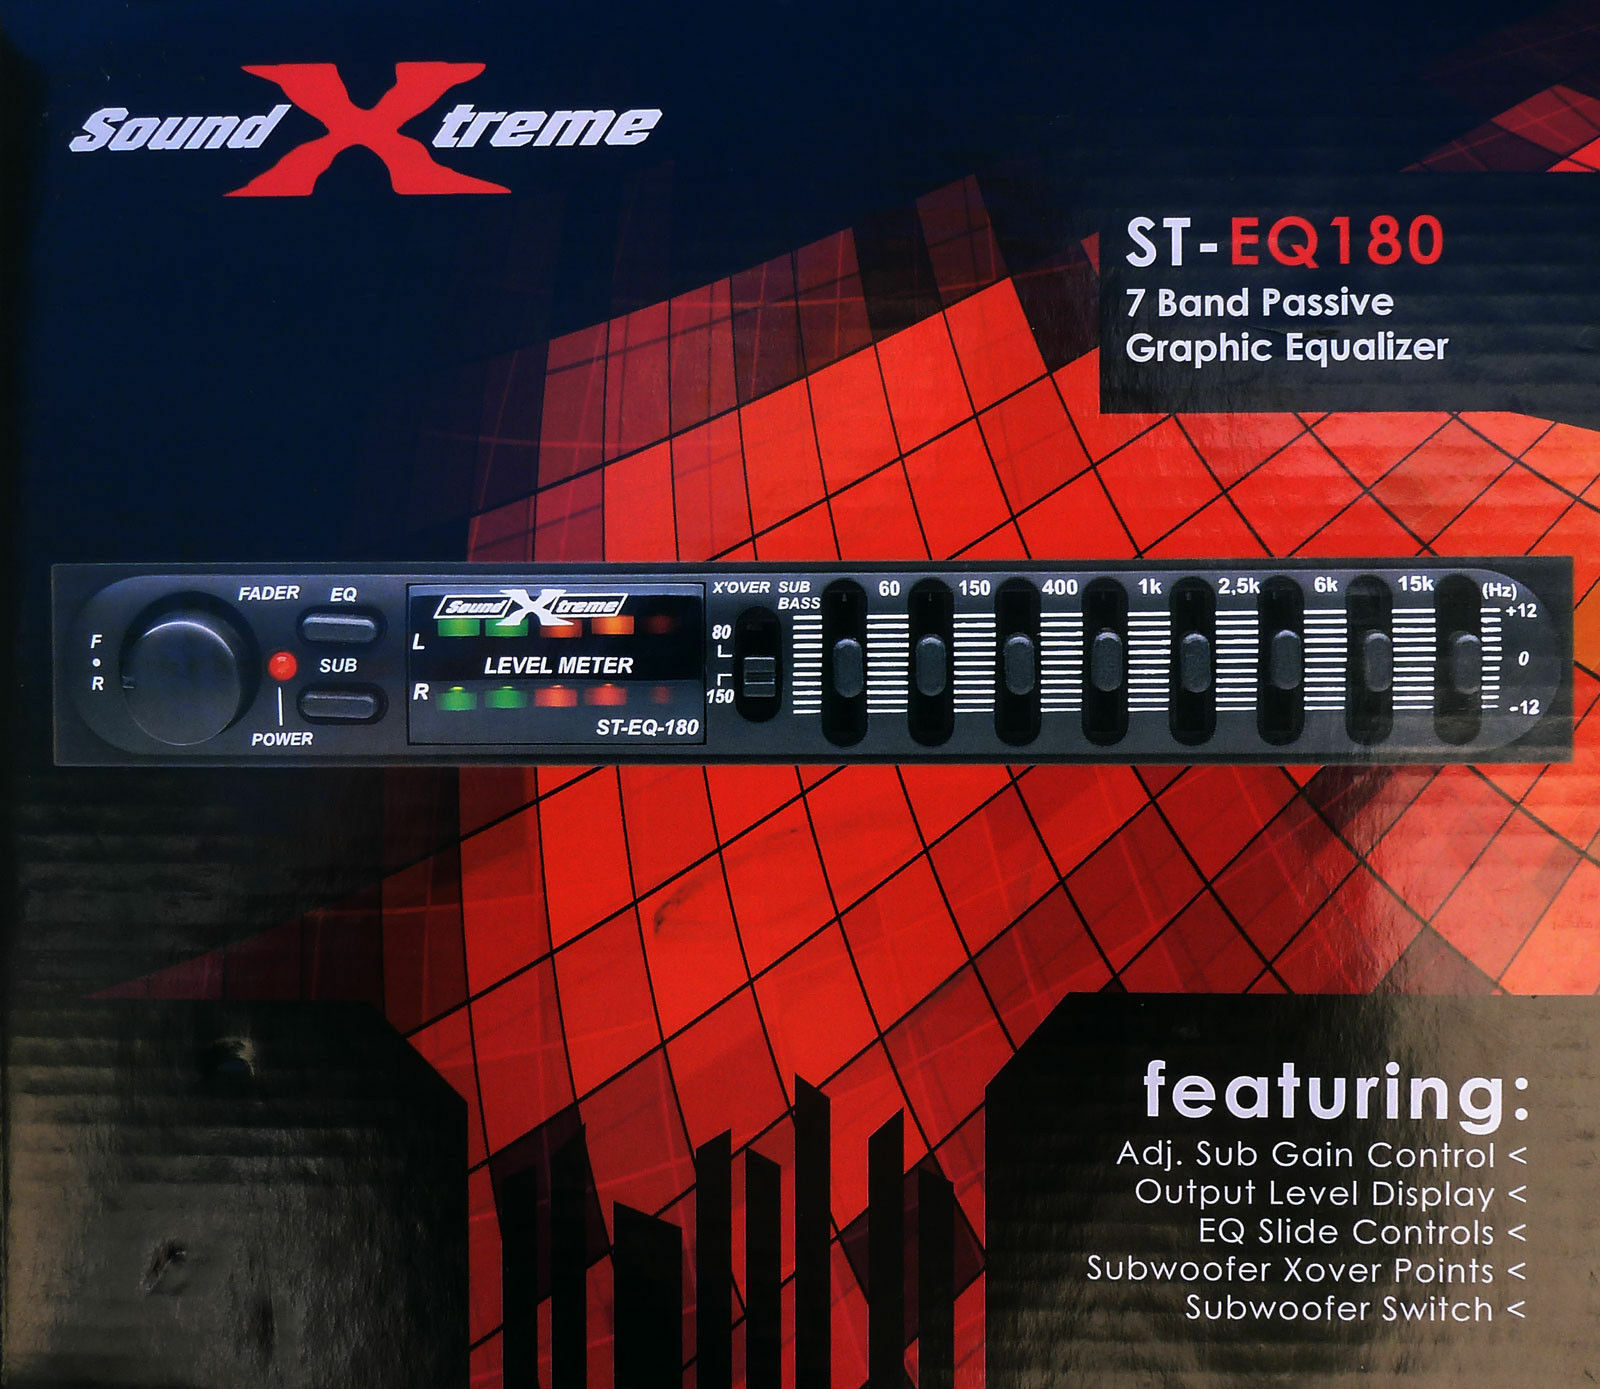 Soundxtreme Car Audio Passive Equalizer 7 Band 1 2 Din Pre Amp Eq Graphic Sub Crossover For Sale